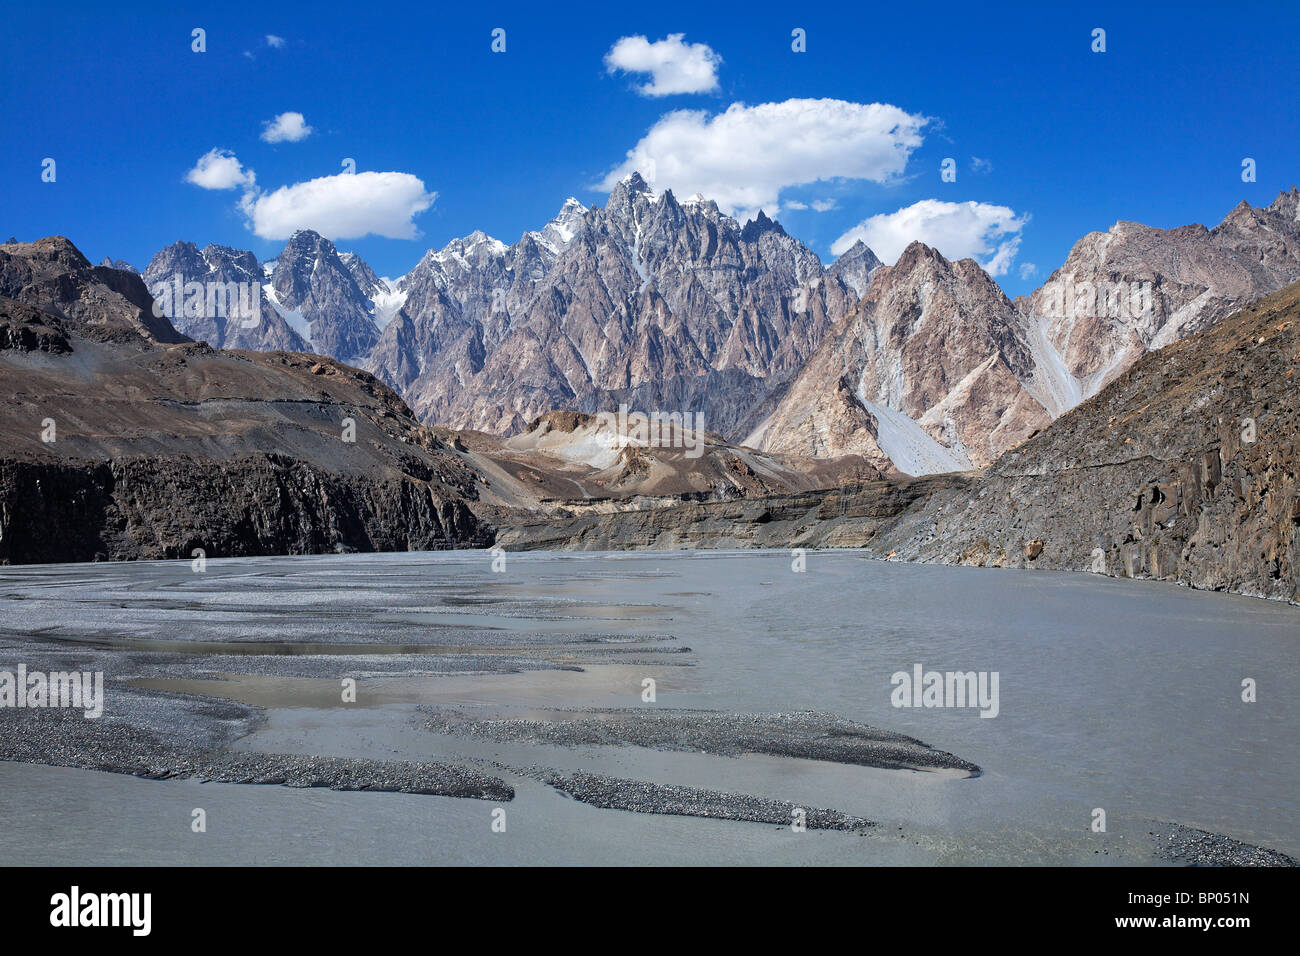 Pakistan - Karakorum - Hunza Valley - Passu - Cathedral spires mountain peaks Stock Photo